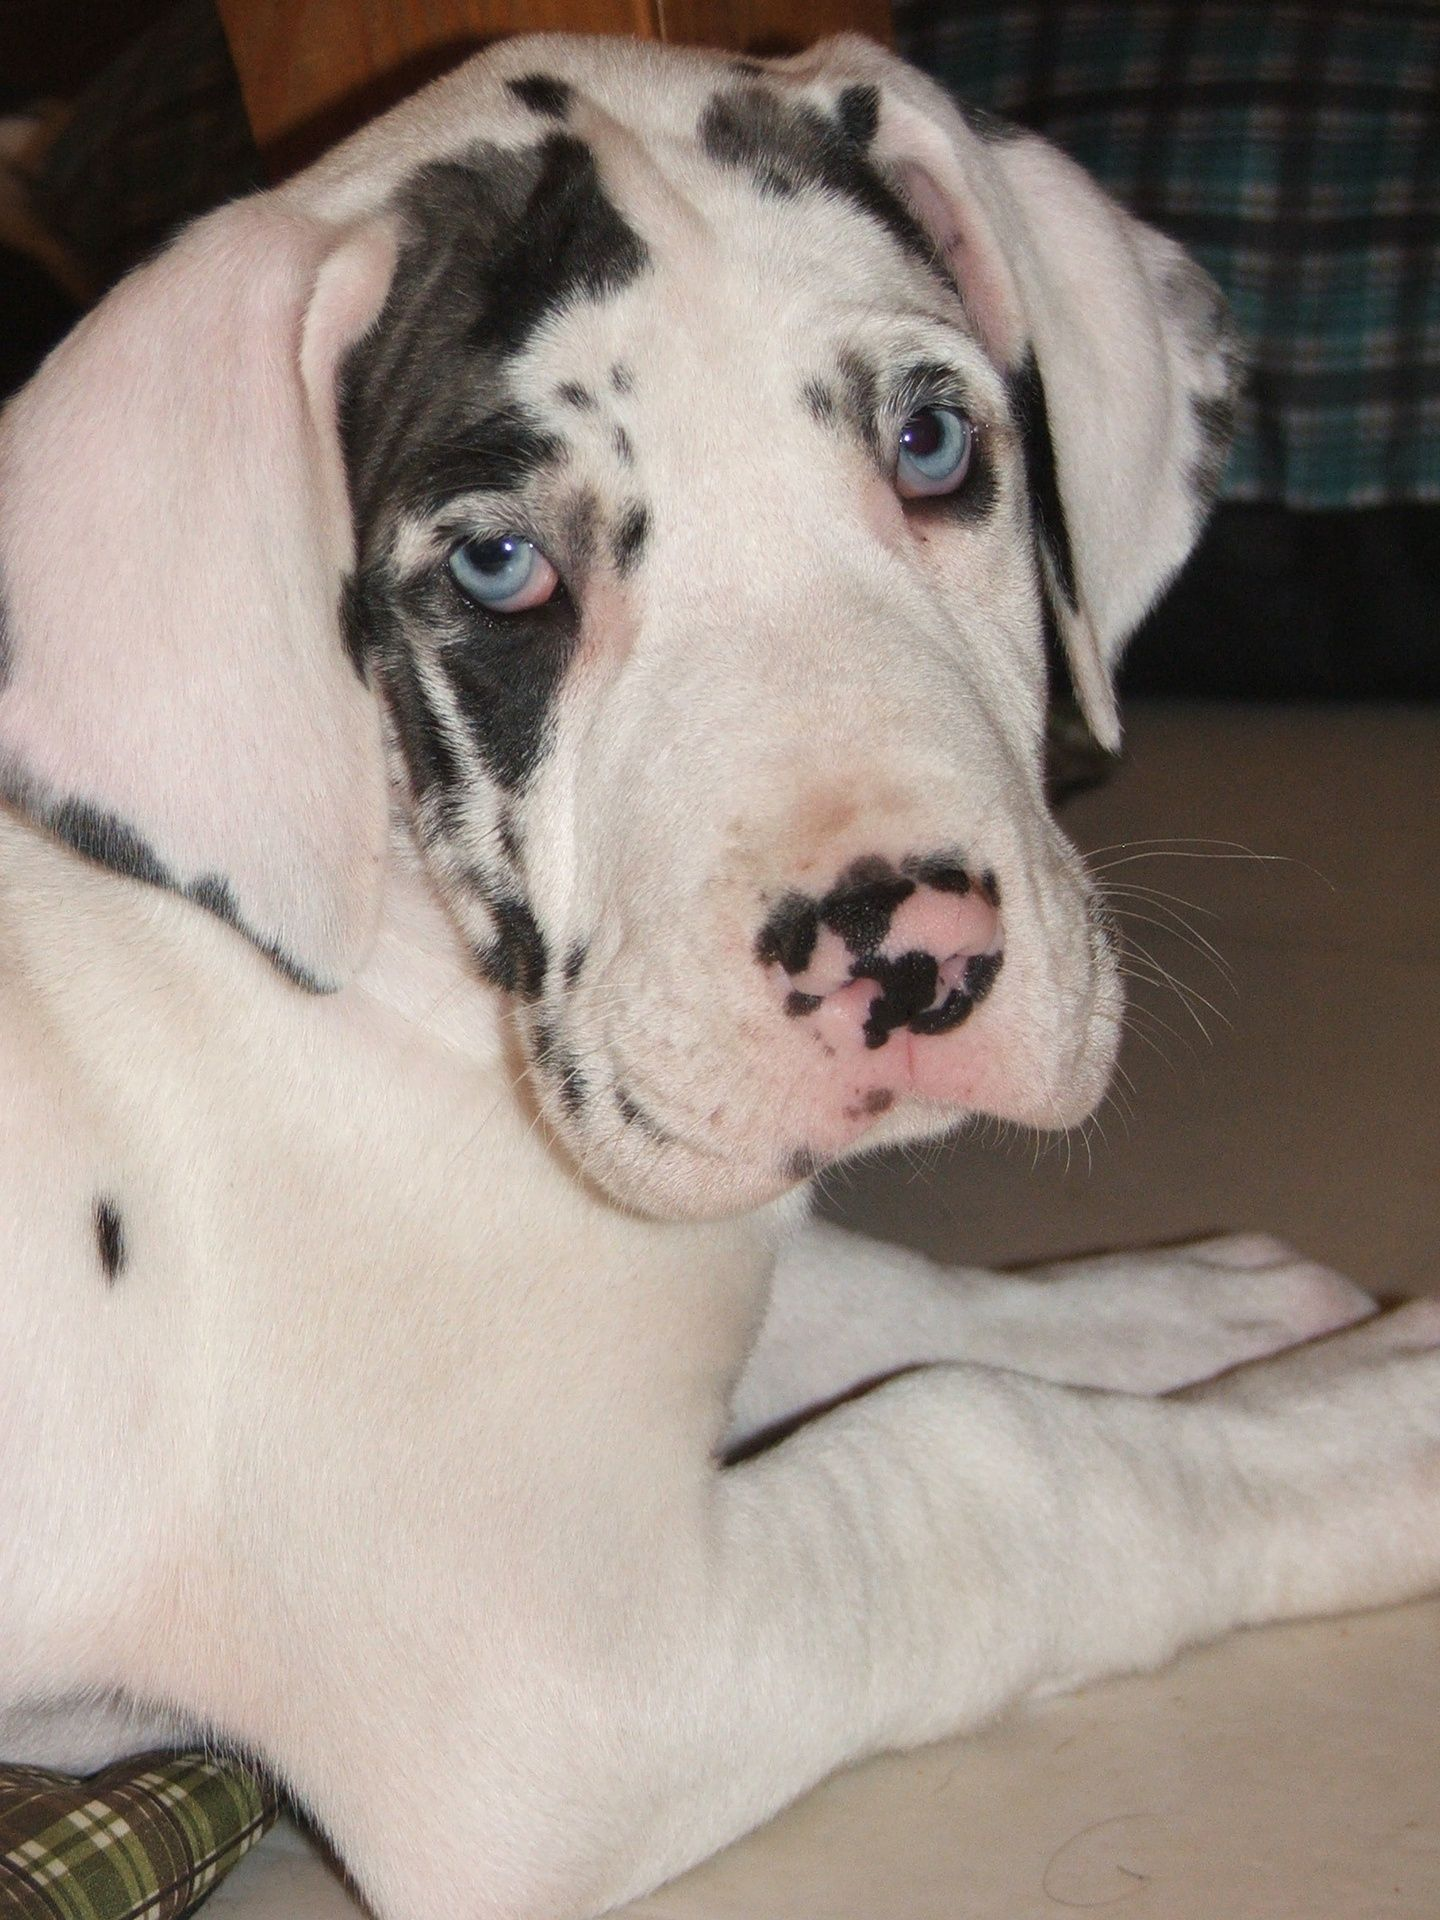 Harlequin Great Dane Puppy Like My Cheyenne When She Was A Pup